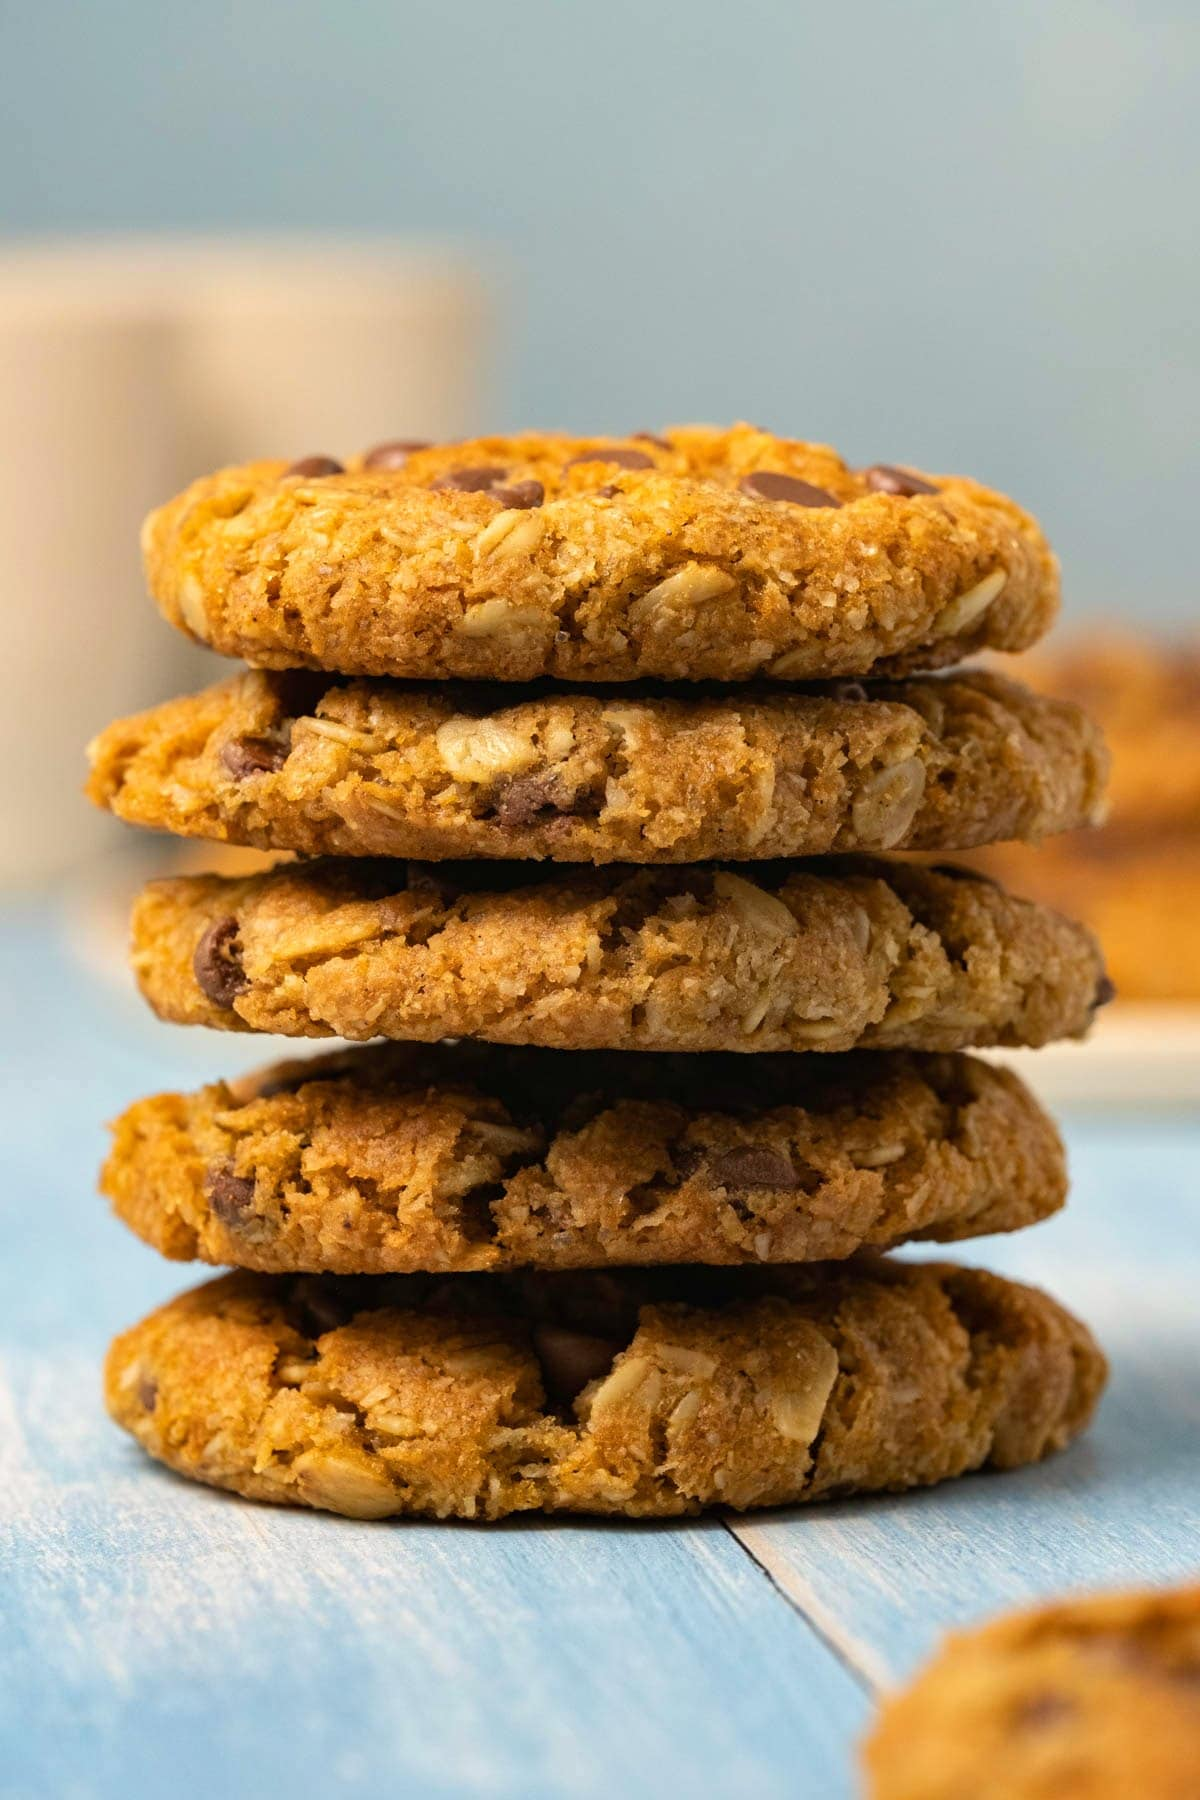 Oatmeal chocolate chip cookies in a stack.